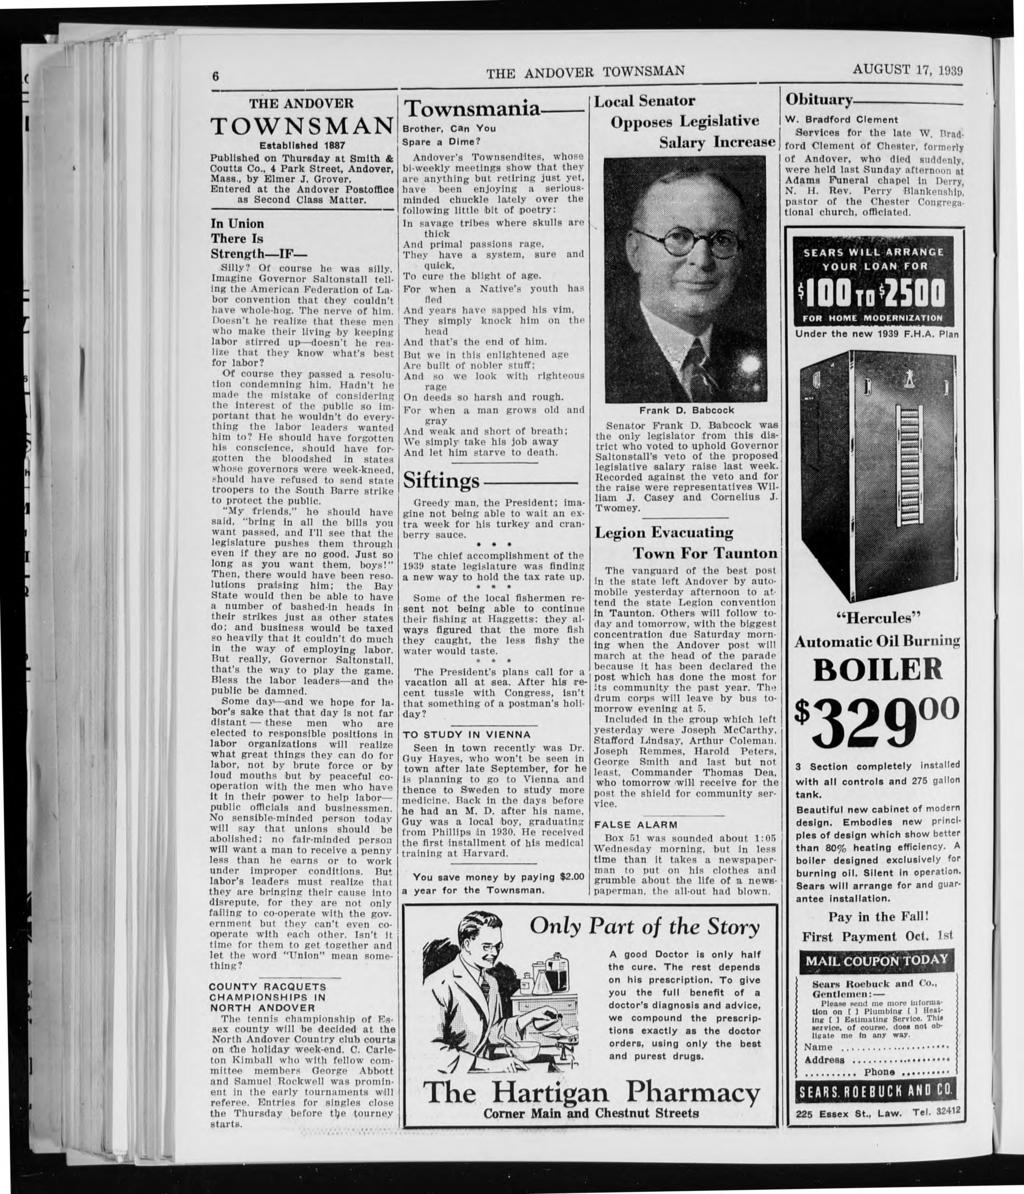 Po 6 THE ANDOVER TOWNSMAN AUGUST 17, 1939 THE ANDOVER TOWNSMAN Established 1887 Published on Thursday at Smith & Andover's Townsendites, whose Coutts Co., 4 Park Street, Andover, Mass., by Elmer J.